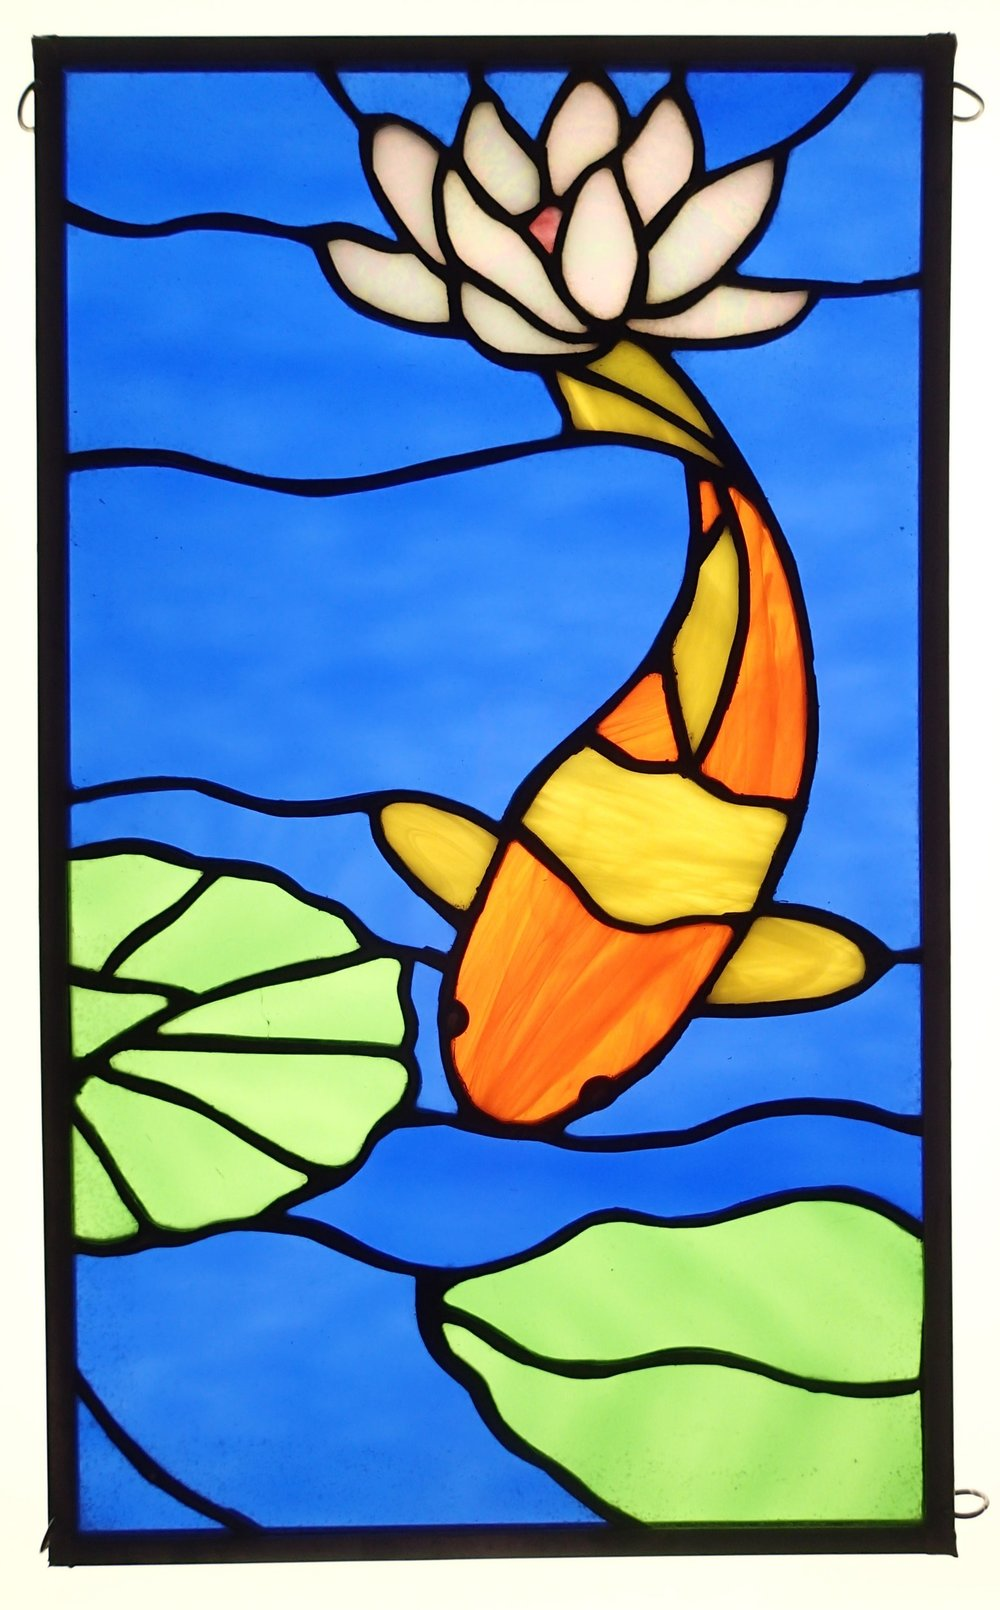 stained_glass_koi.jpg